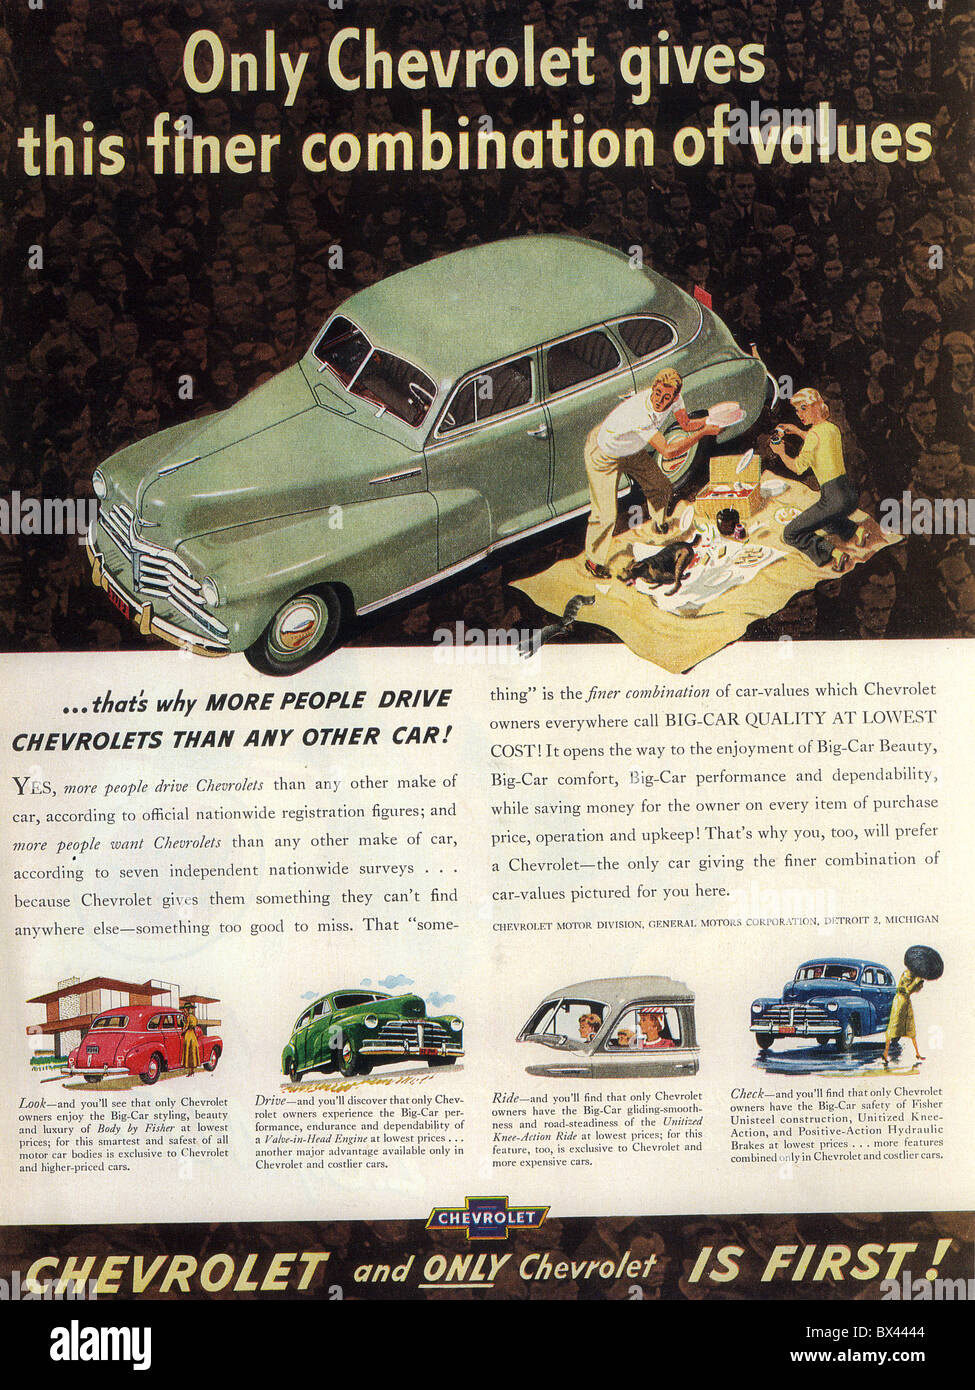 CHEVROLET CAR ADVERT about 1948 Stock Photo, Royalty Free Image ...